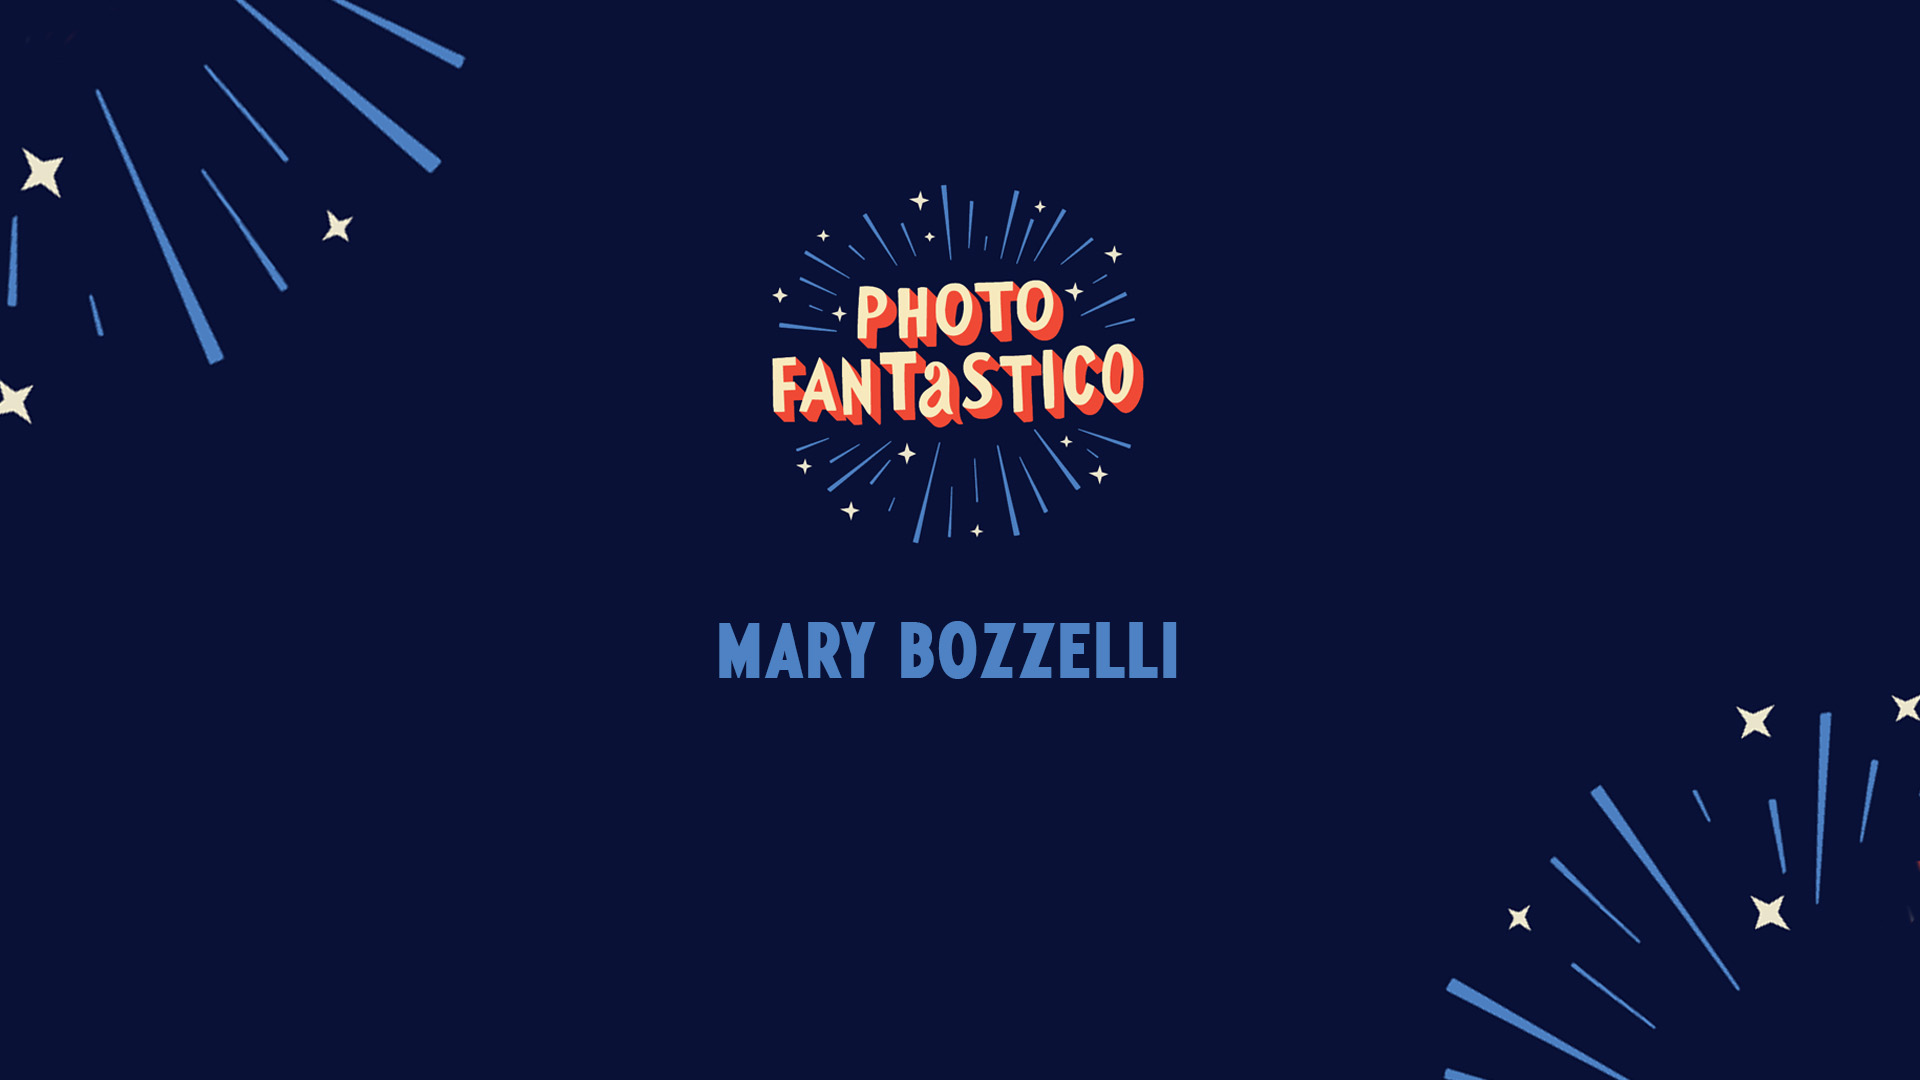 Mary Bozzelli